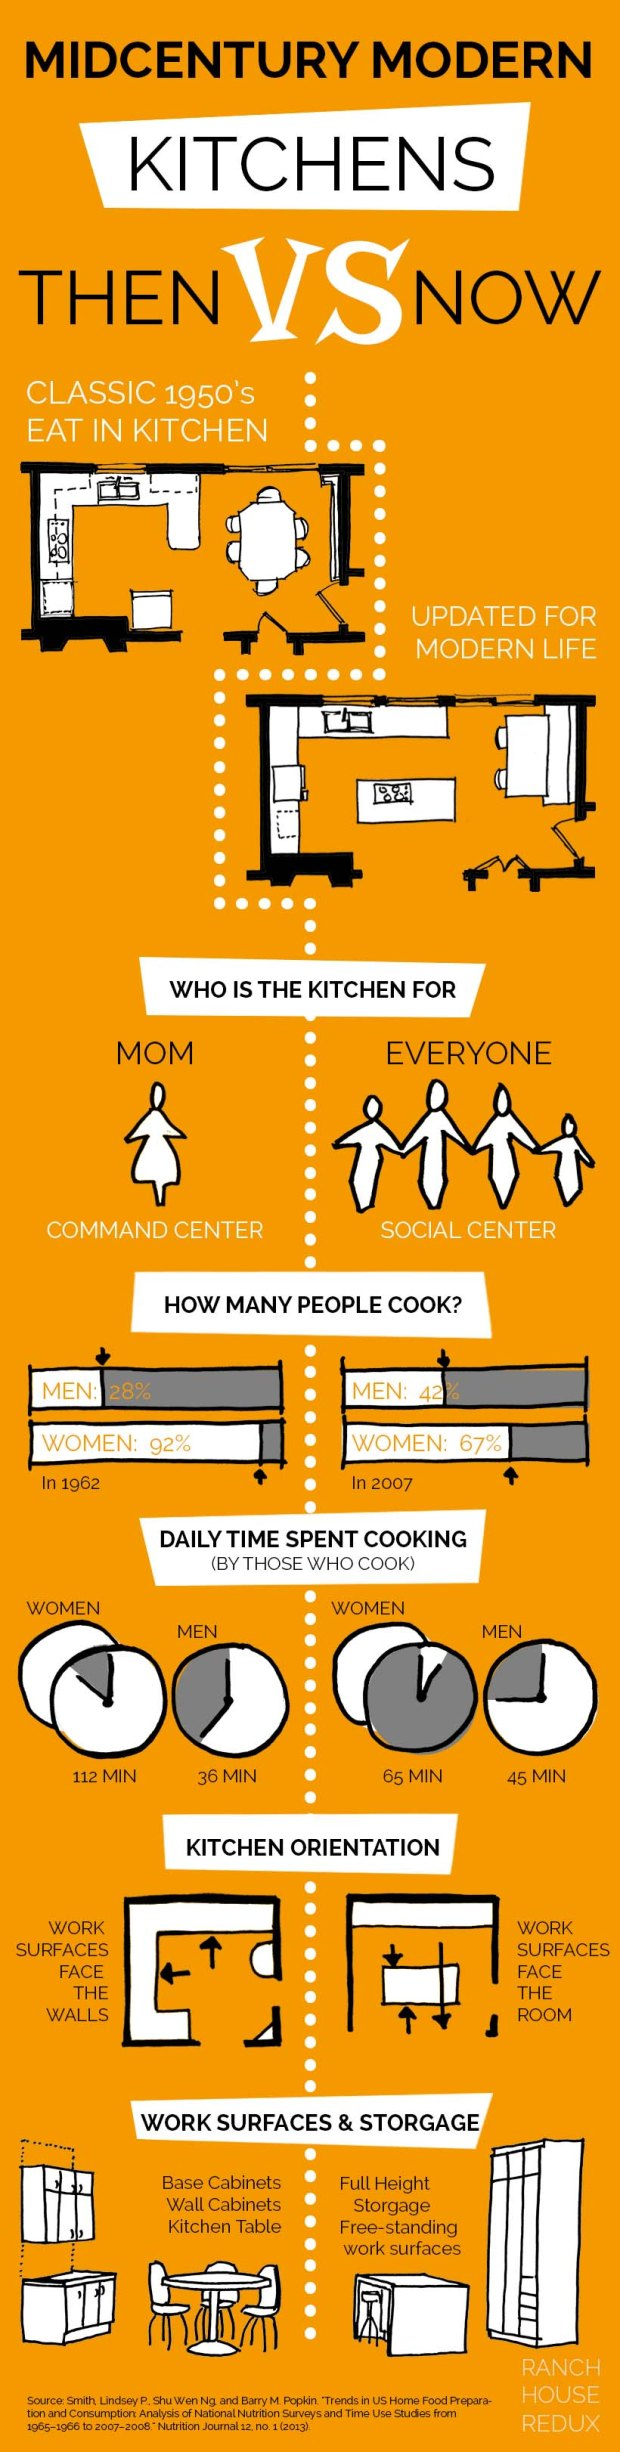 midcentury kitchen infographic